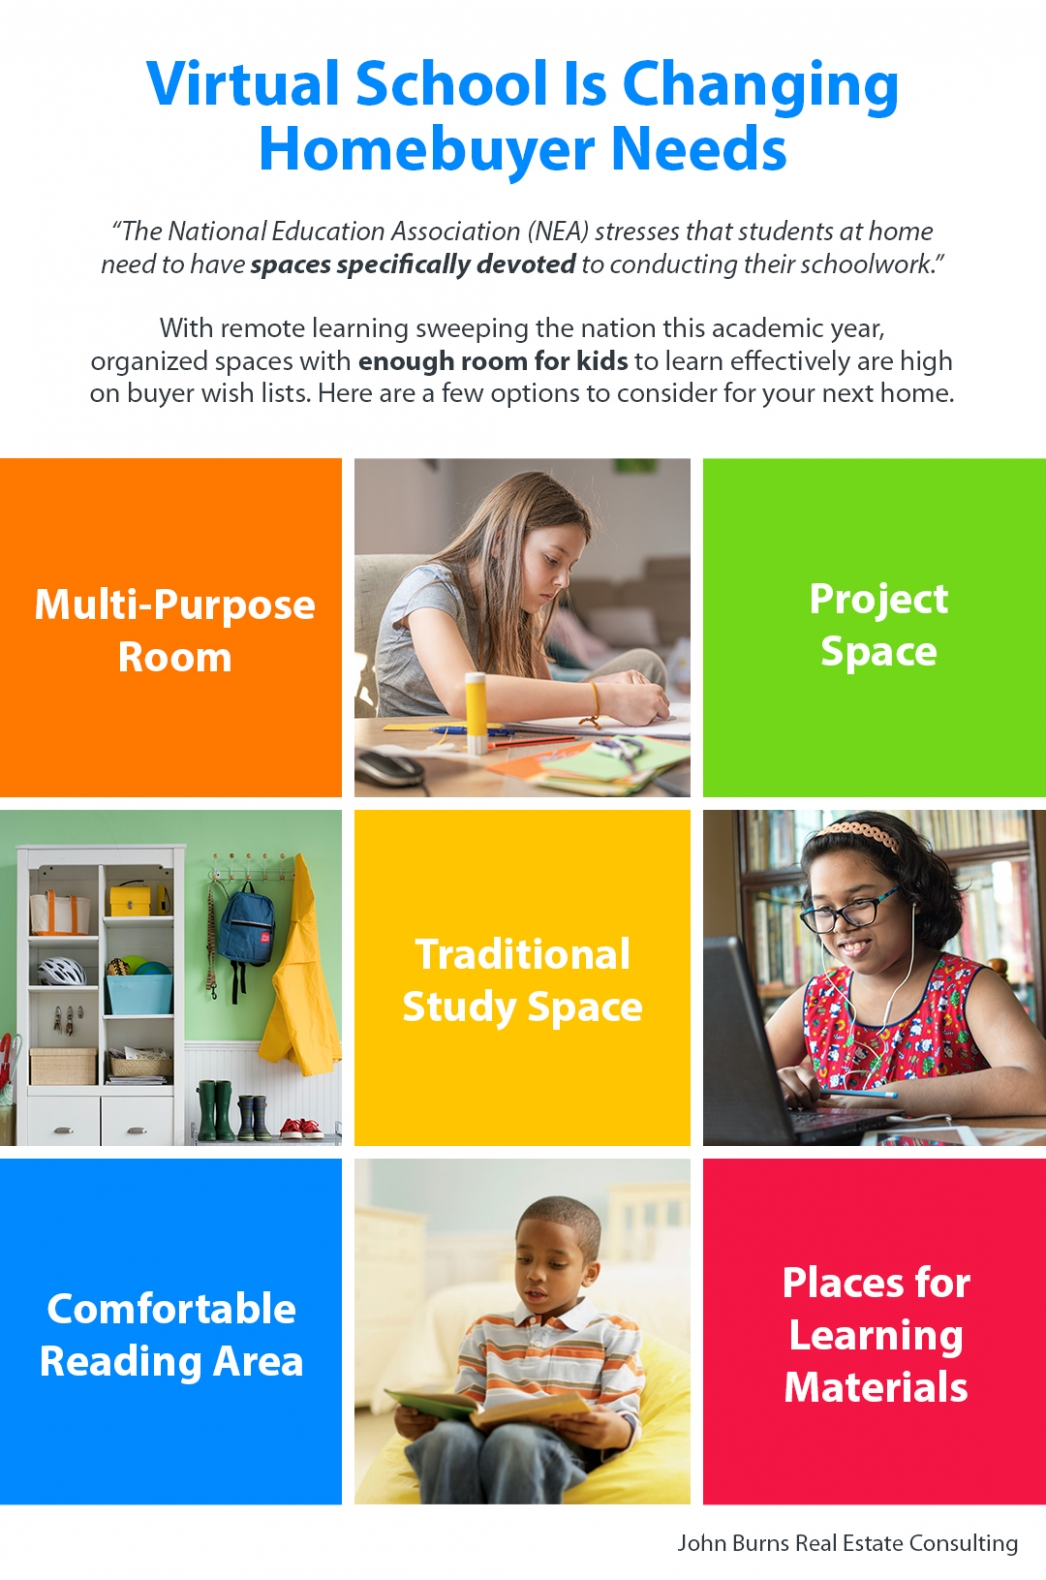 Virtual School Is Changing Homebuyer Needs [INFOGRAPHIC] | My KCM